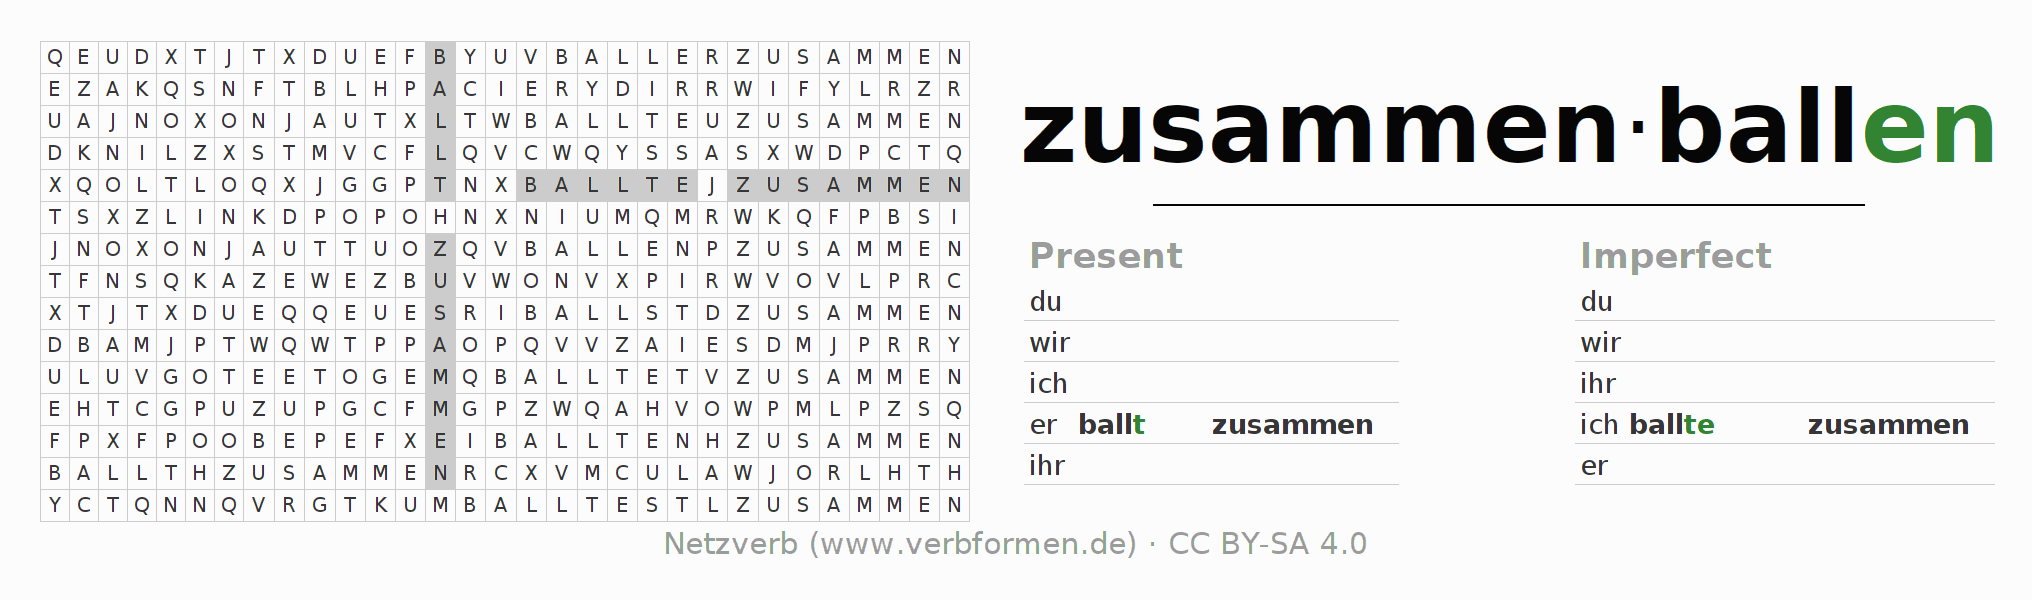 Word search puzzle for the conjugation of the verb zusammenballen